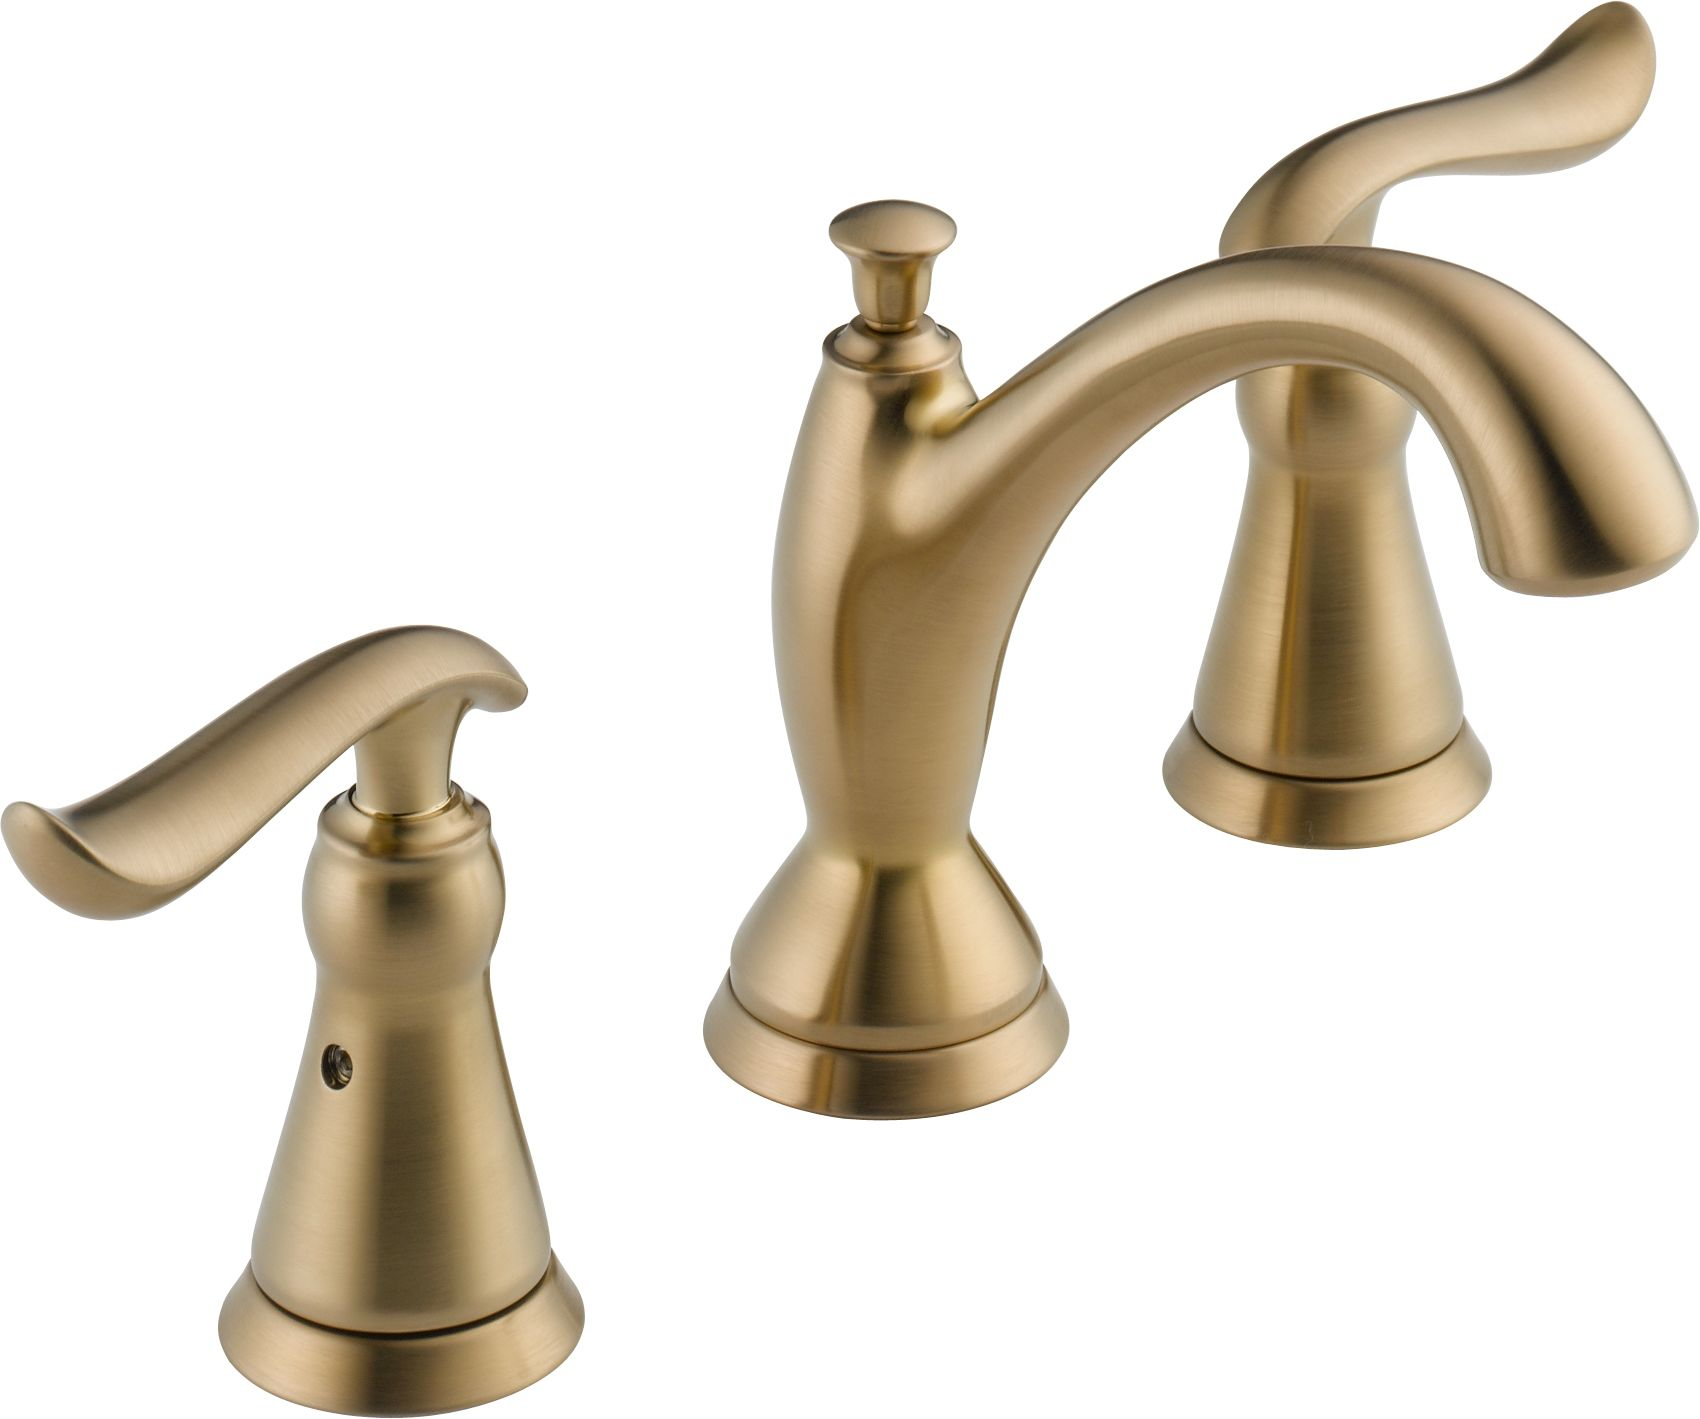 Delta 3594-RBMPU-DST Venetian Bronze Linden Widespread Bathroom Faucet with Pop-Up Drain Assembly - Includes Lifetime Warranty - Faucet.com